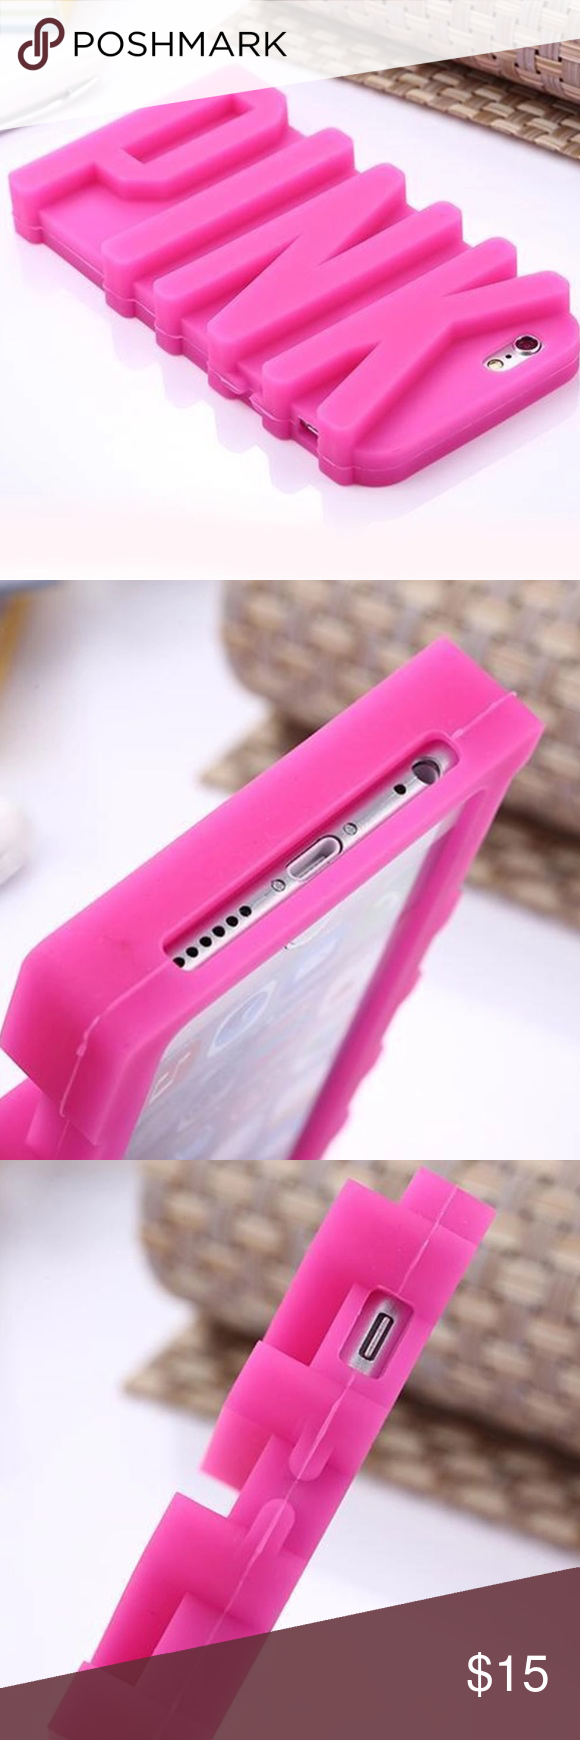 💖PINK 3D iPhone Case⭐ 🎀⭐ 3D PINK Letter Soft Silicone Case ...